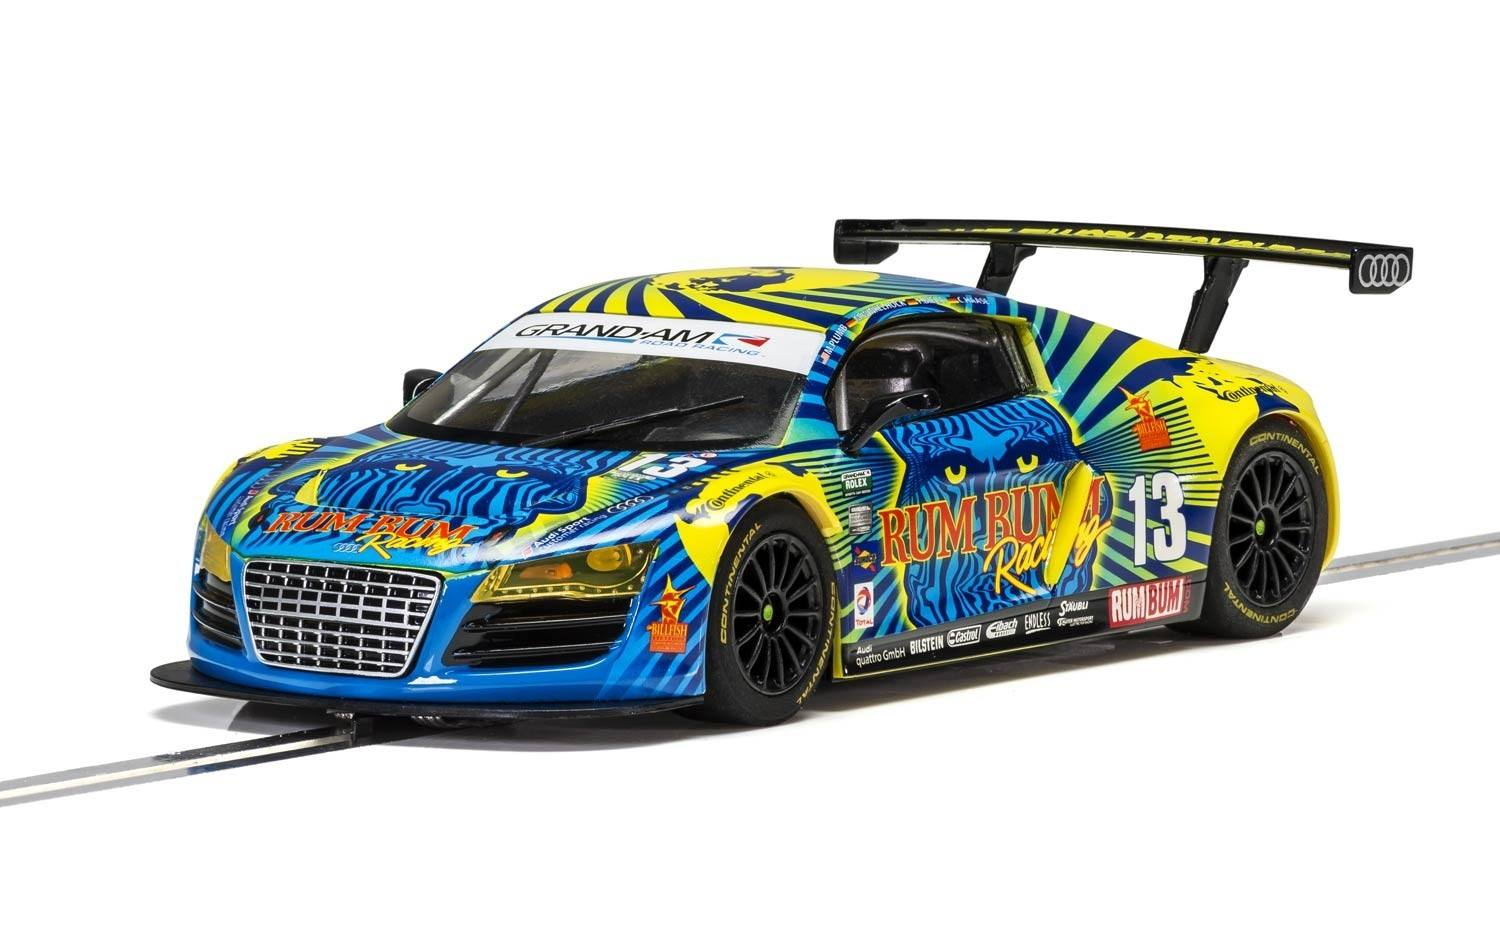 Audi R8 LMS - Rum Bum Racing